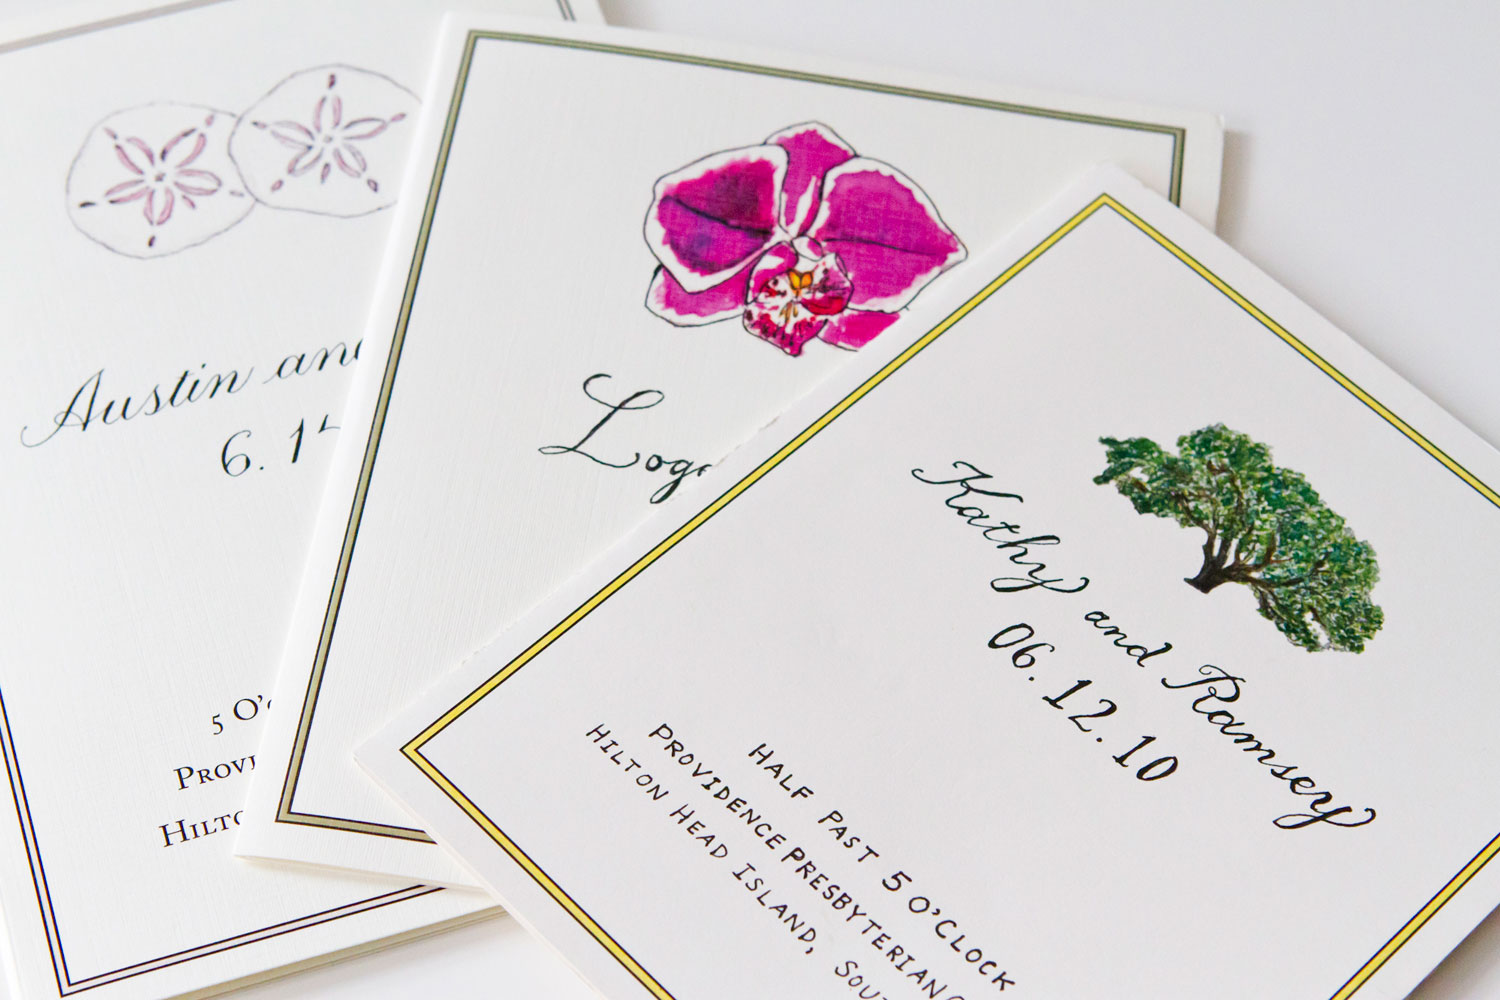 Four years....three siblings...three South Carolina weddings...three LAURA ANN custom wedding programs.